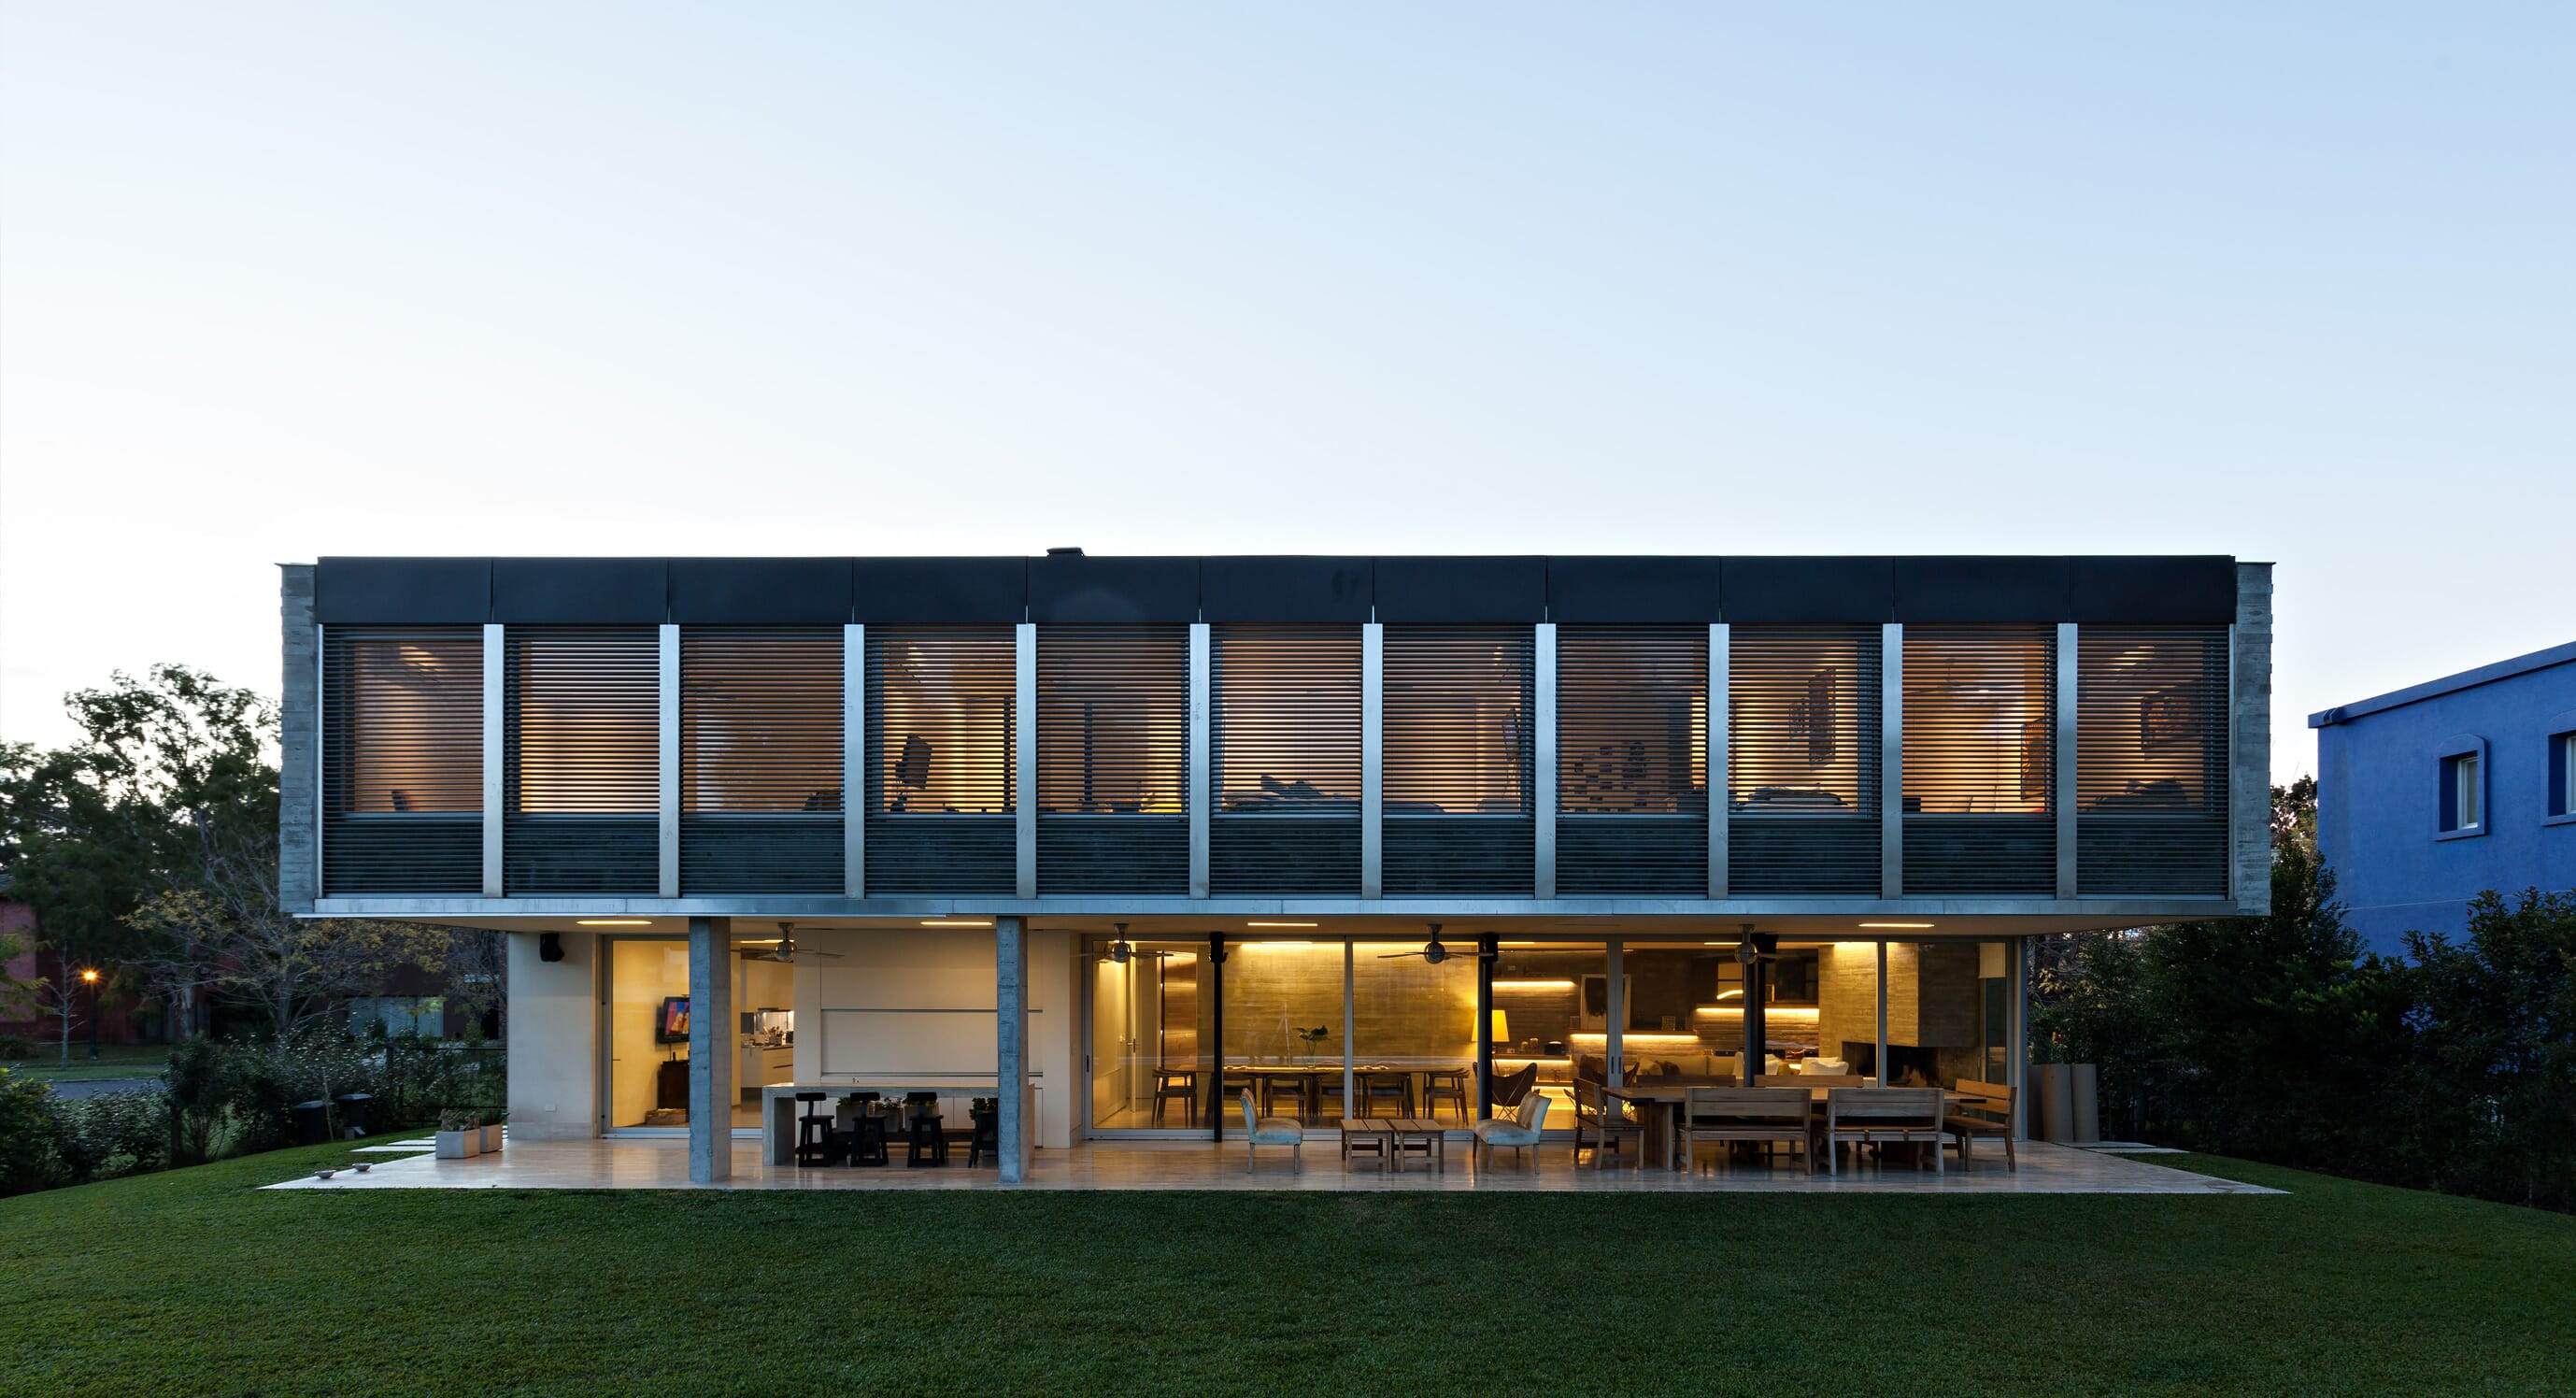 L House Adds Flair To An Argentinian Cul-De-Sac